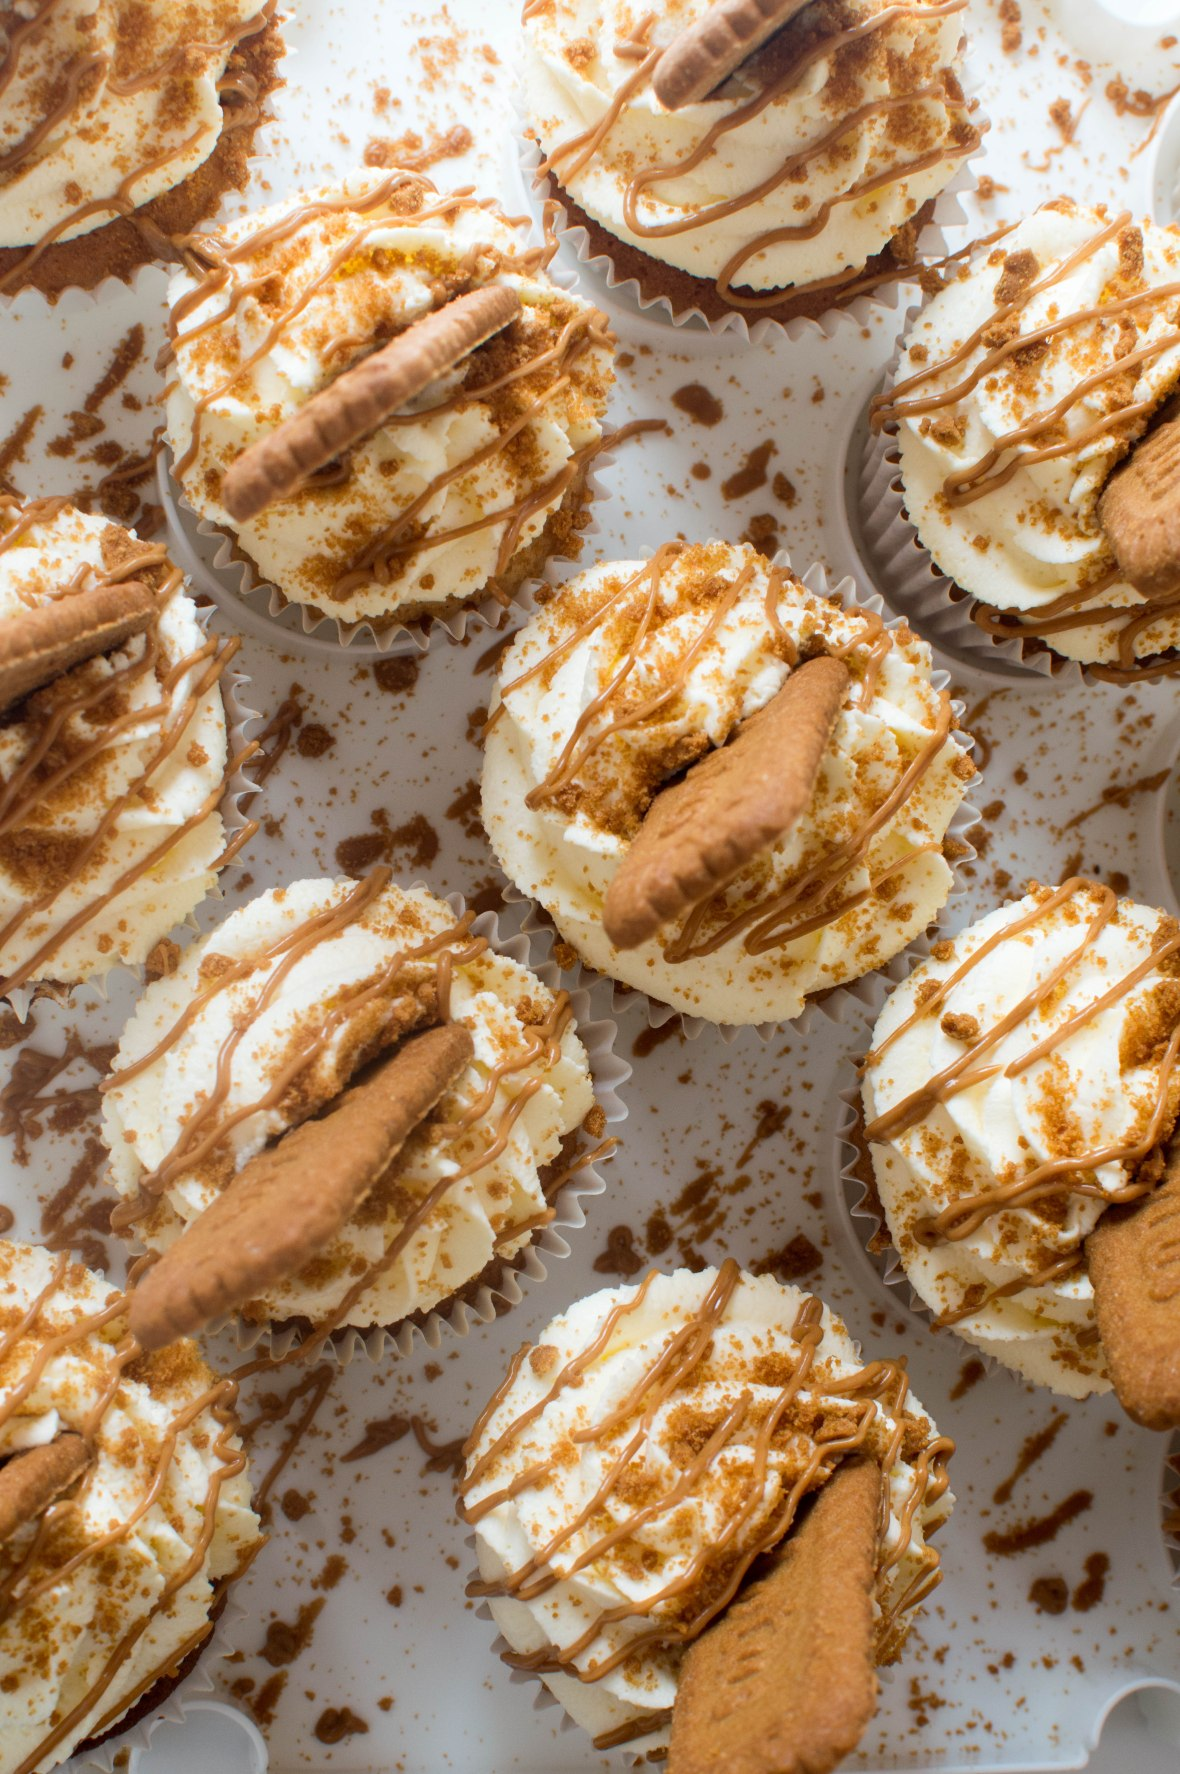 Lotus Biscoff Cupcakes With Whipped Cream Frosting And Speculoos Drizzle - Kay's Kitchen